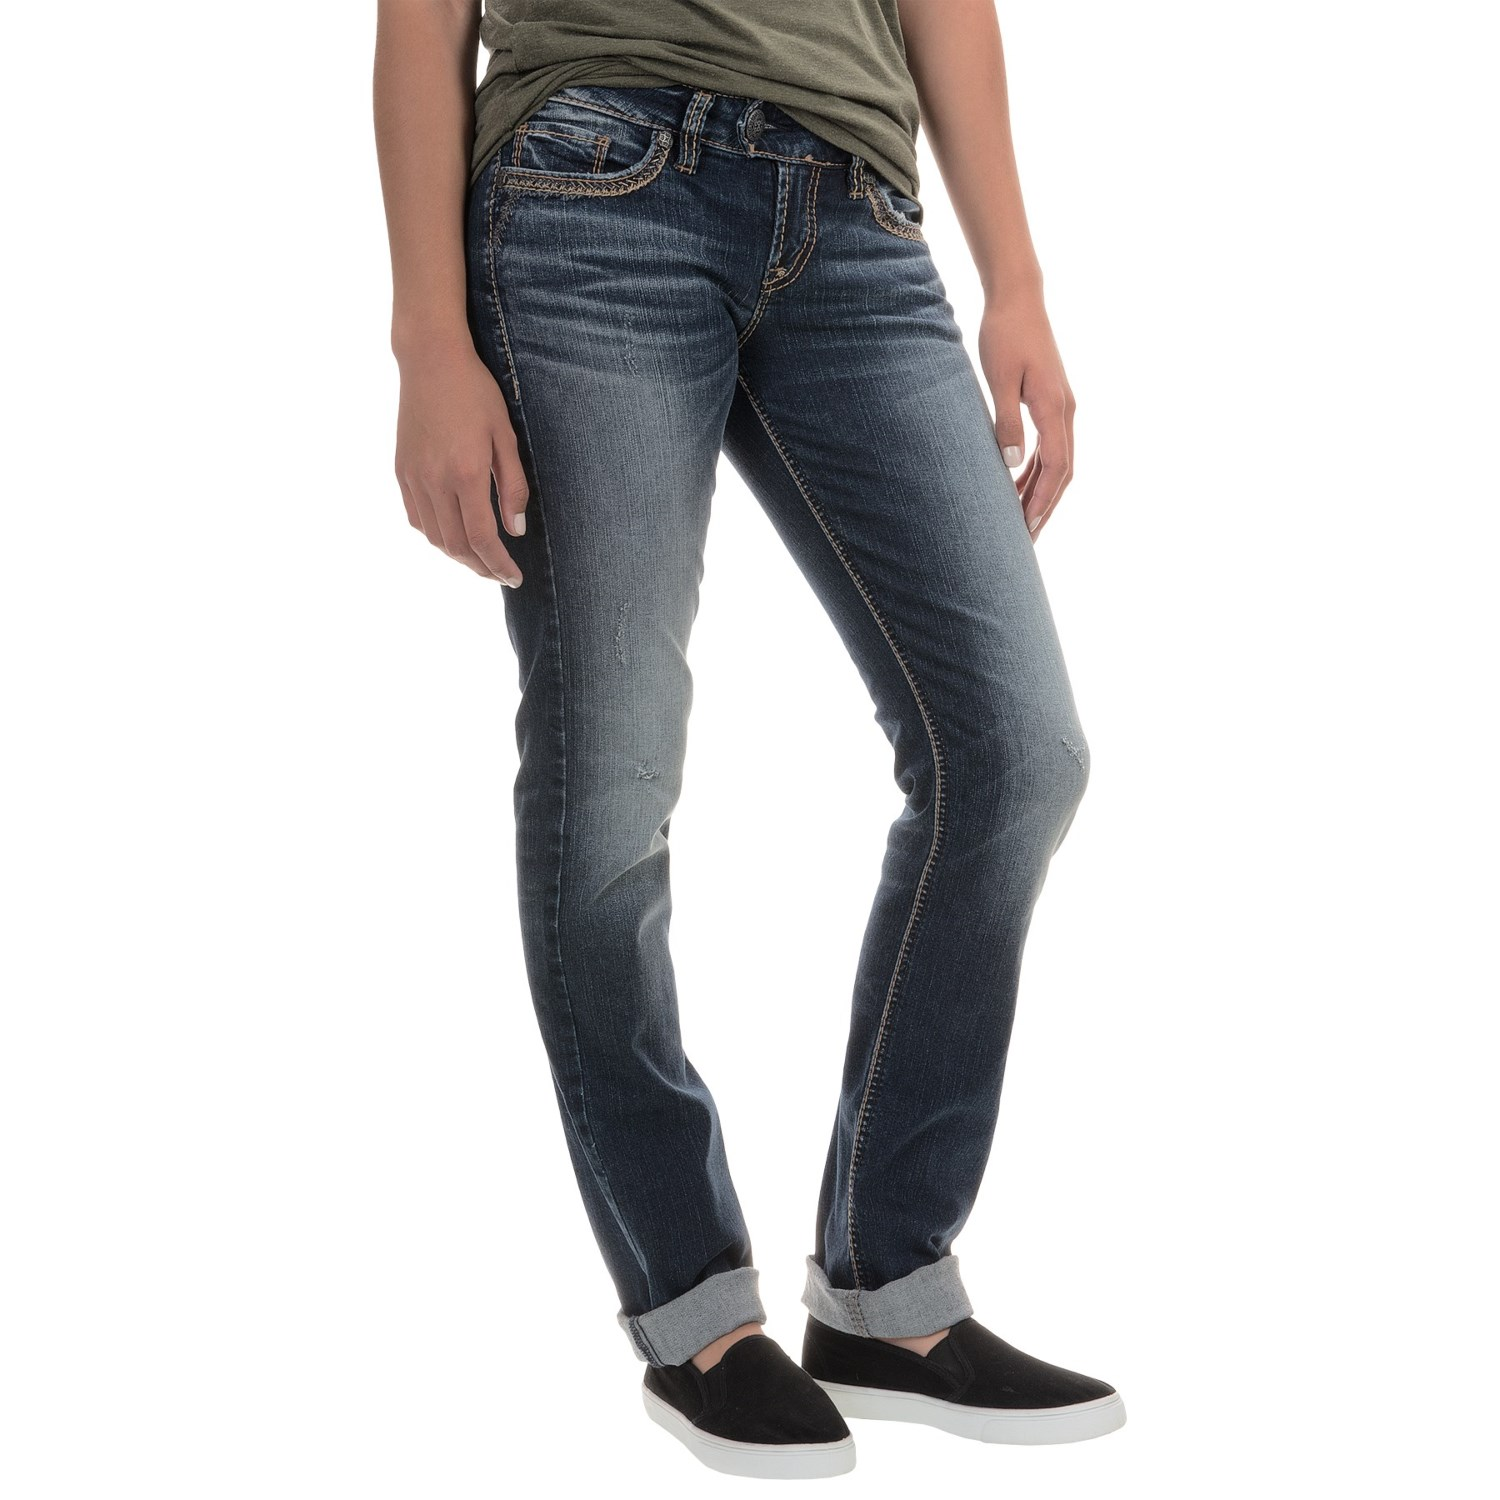 Silver Jeans Tuesday Jeans (For Women) 153DM - Save 55%